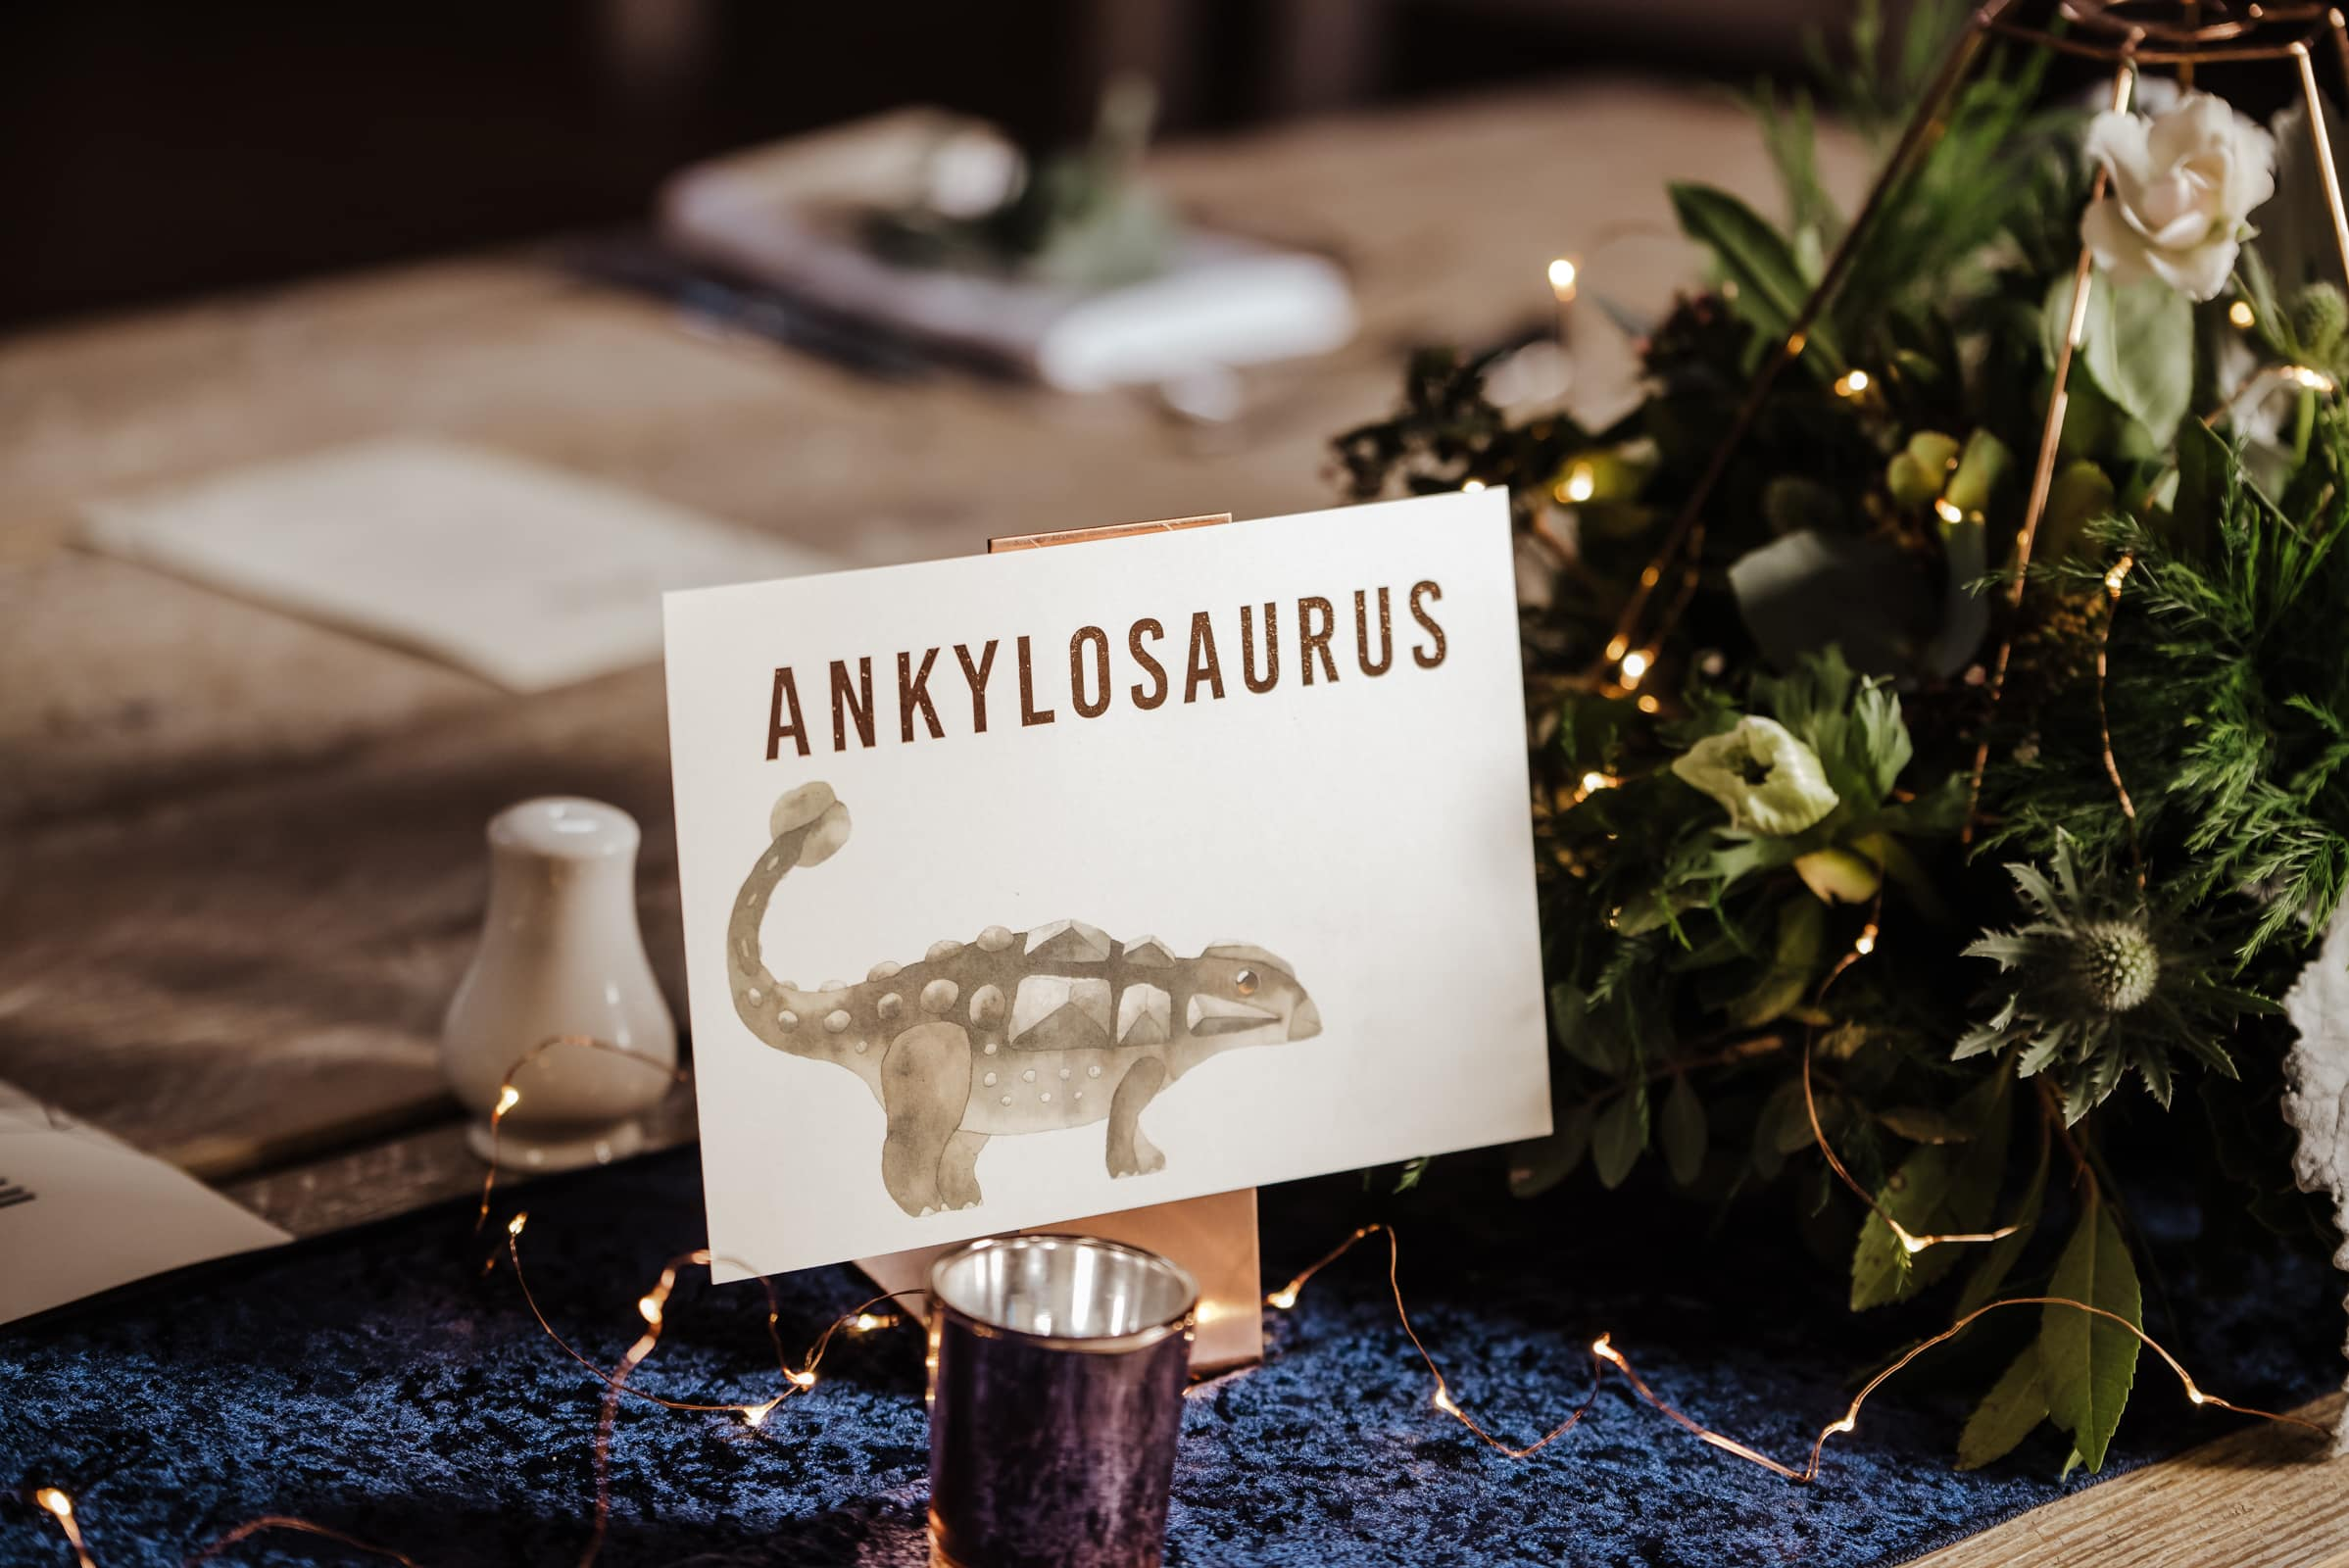 Wedding decor dinasour themed wedding menus Roshni photography The Milling Barn, Bluntswood Hall, Throcking wedding photographer